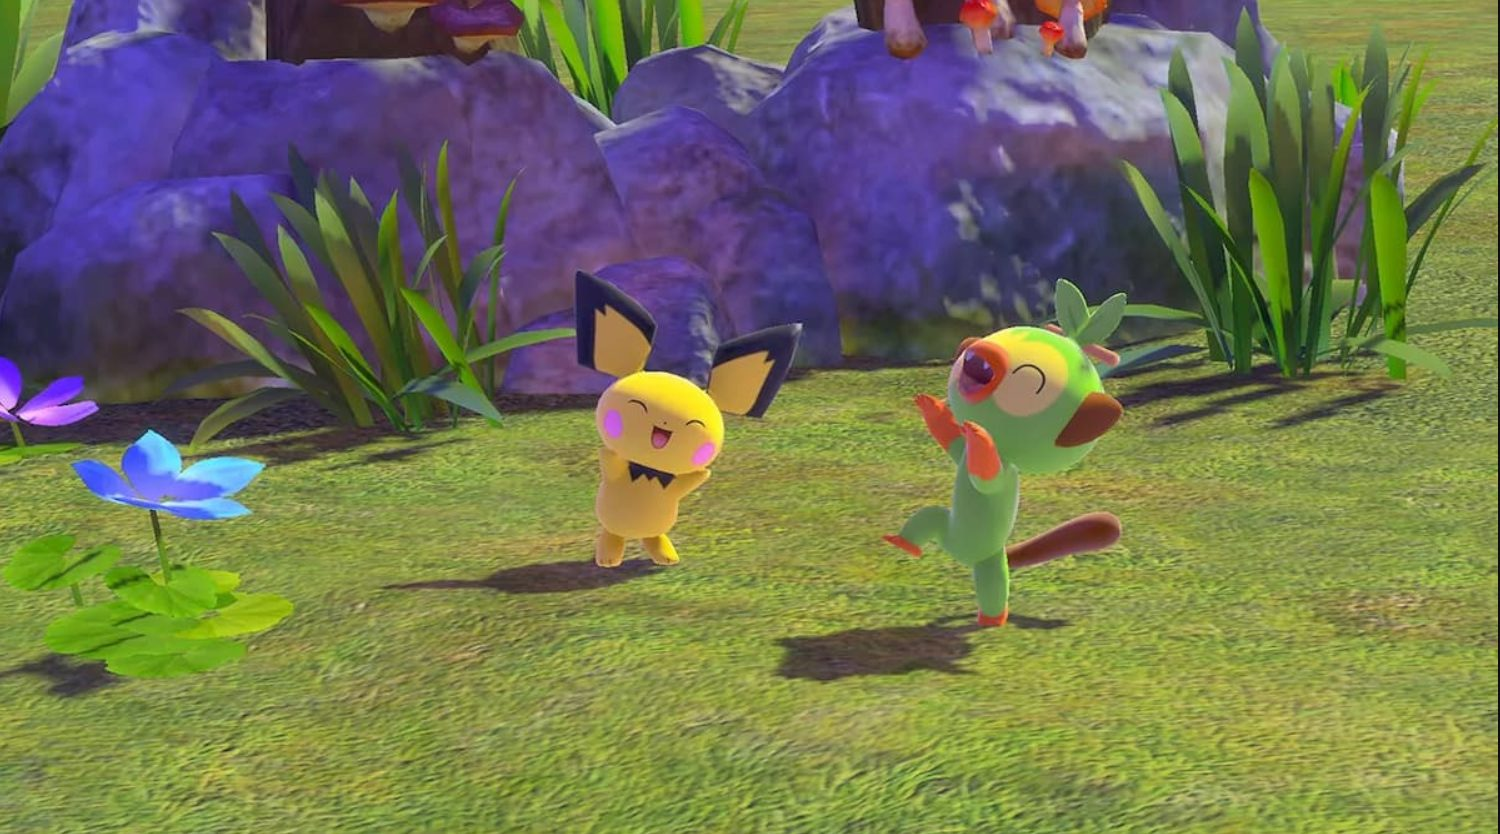 How to Complete Hide-and-Seek in the Flowers in New Pokemon Snap